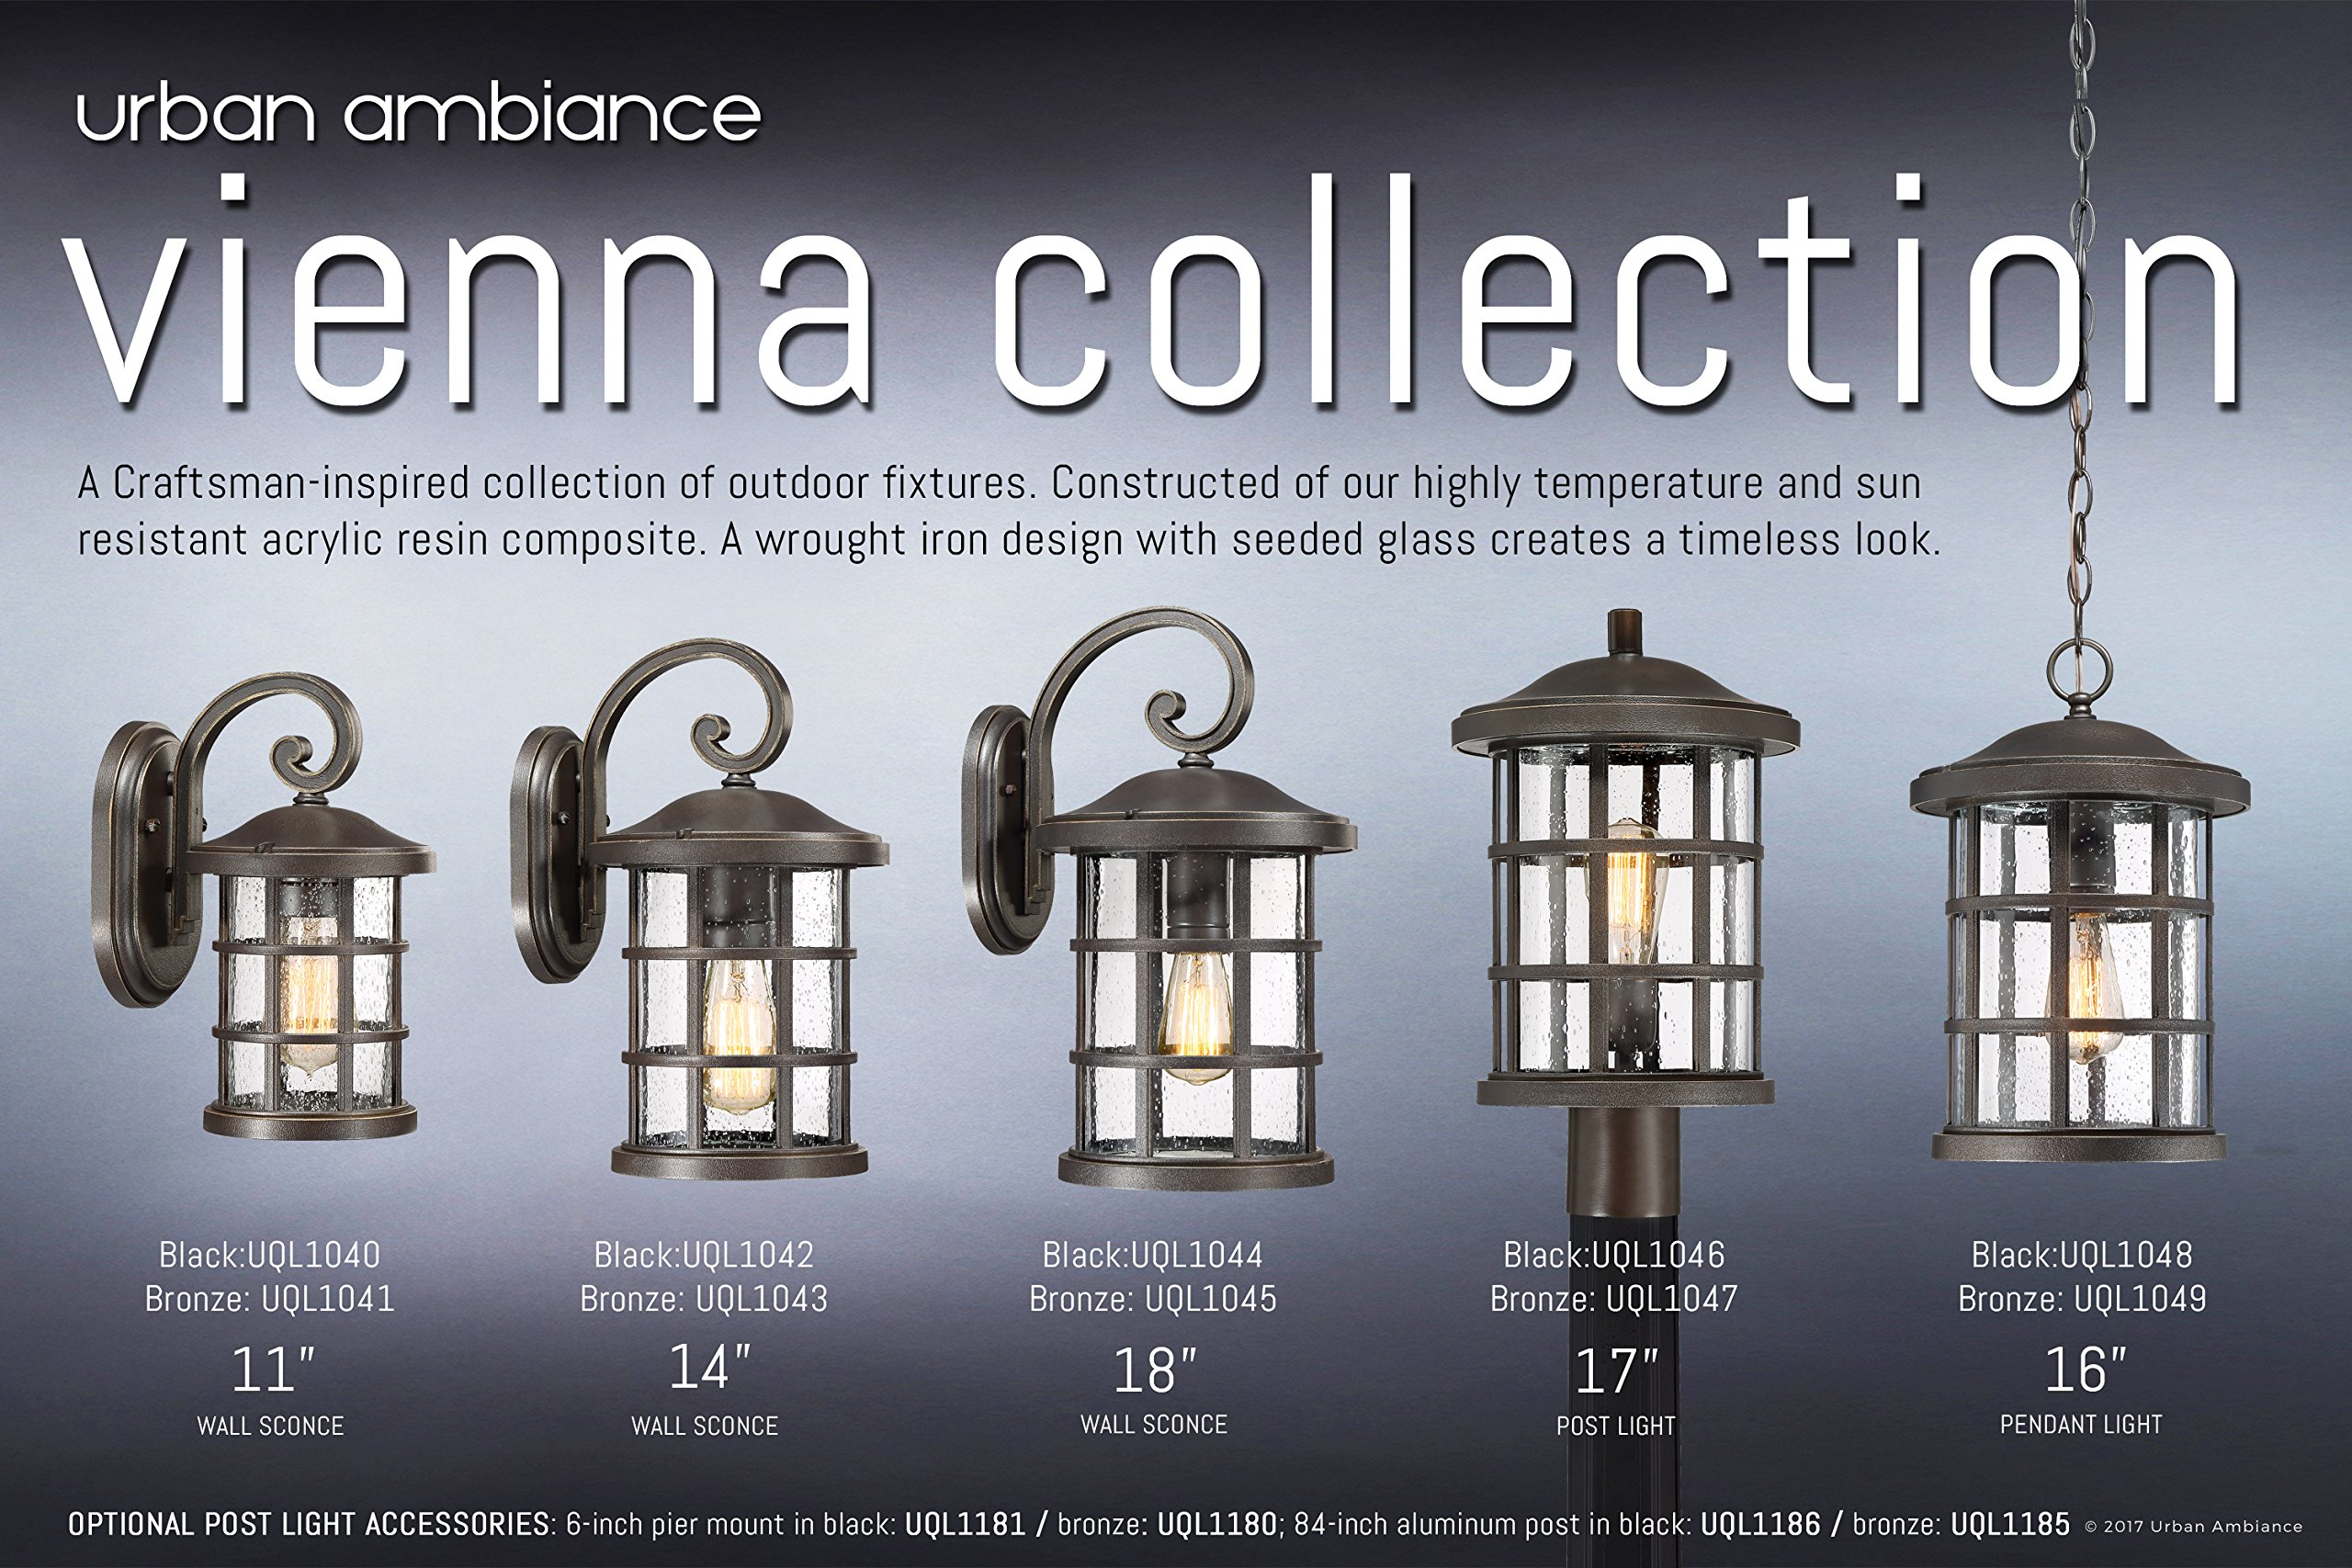 Luxury Craftsman Outdoor Wall Light, Small Size: 11'' H x 6'' W, with Tudor Style Elements, Wrought Iron Design, Oil Rubbed Parisian Bronze Finish and Seeded Glass, UQL1041 by Urban Ambiance by Urban Ambiance (Image #6)